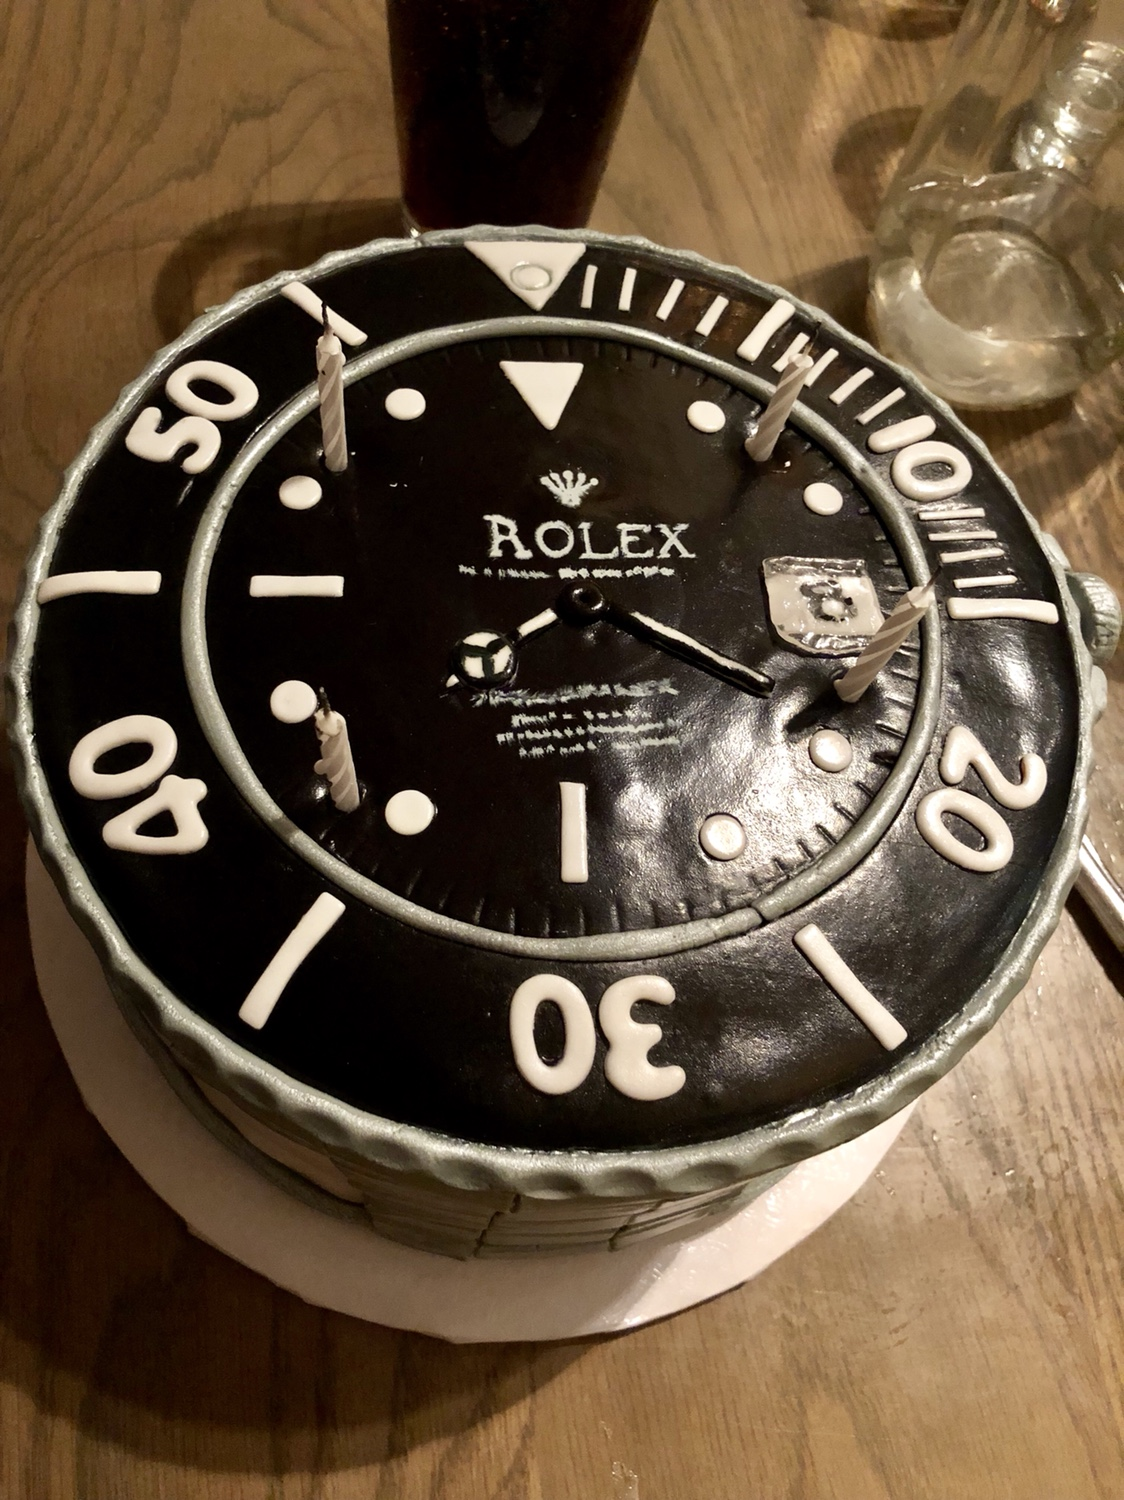 Groovy Rolex Birthday Cake Rolex Forums Rolex Watch Forum Personalised Birthday Cards Arneslily Jamesorg